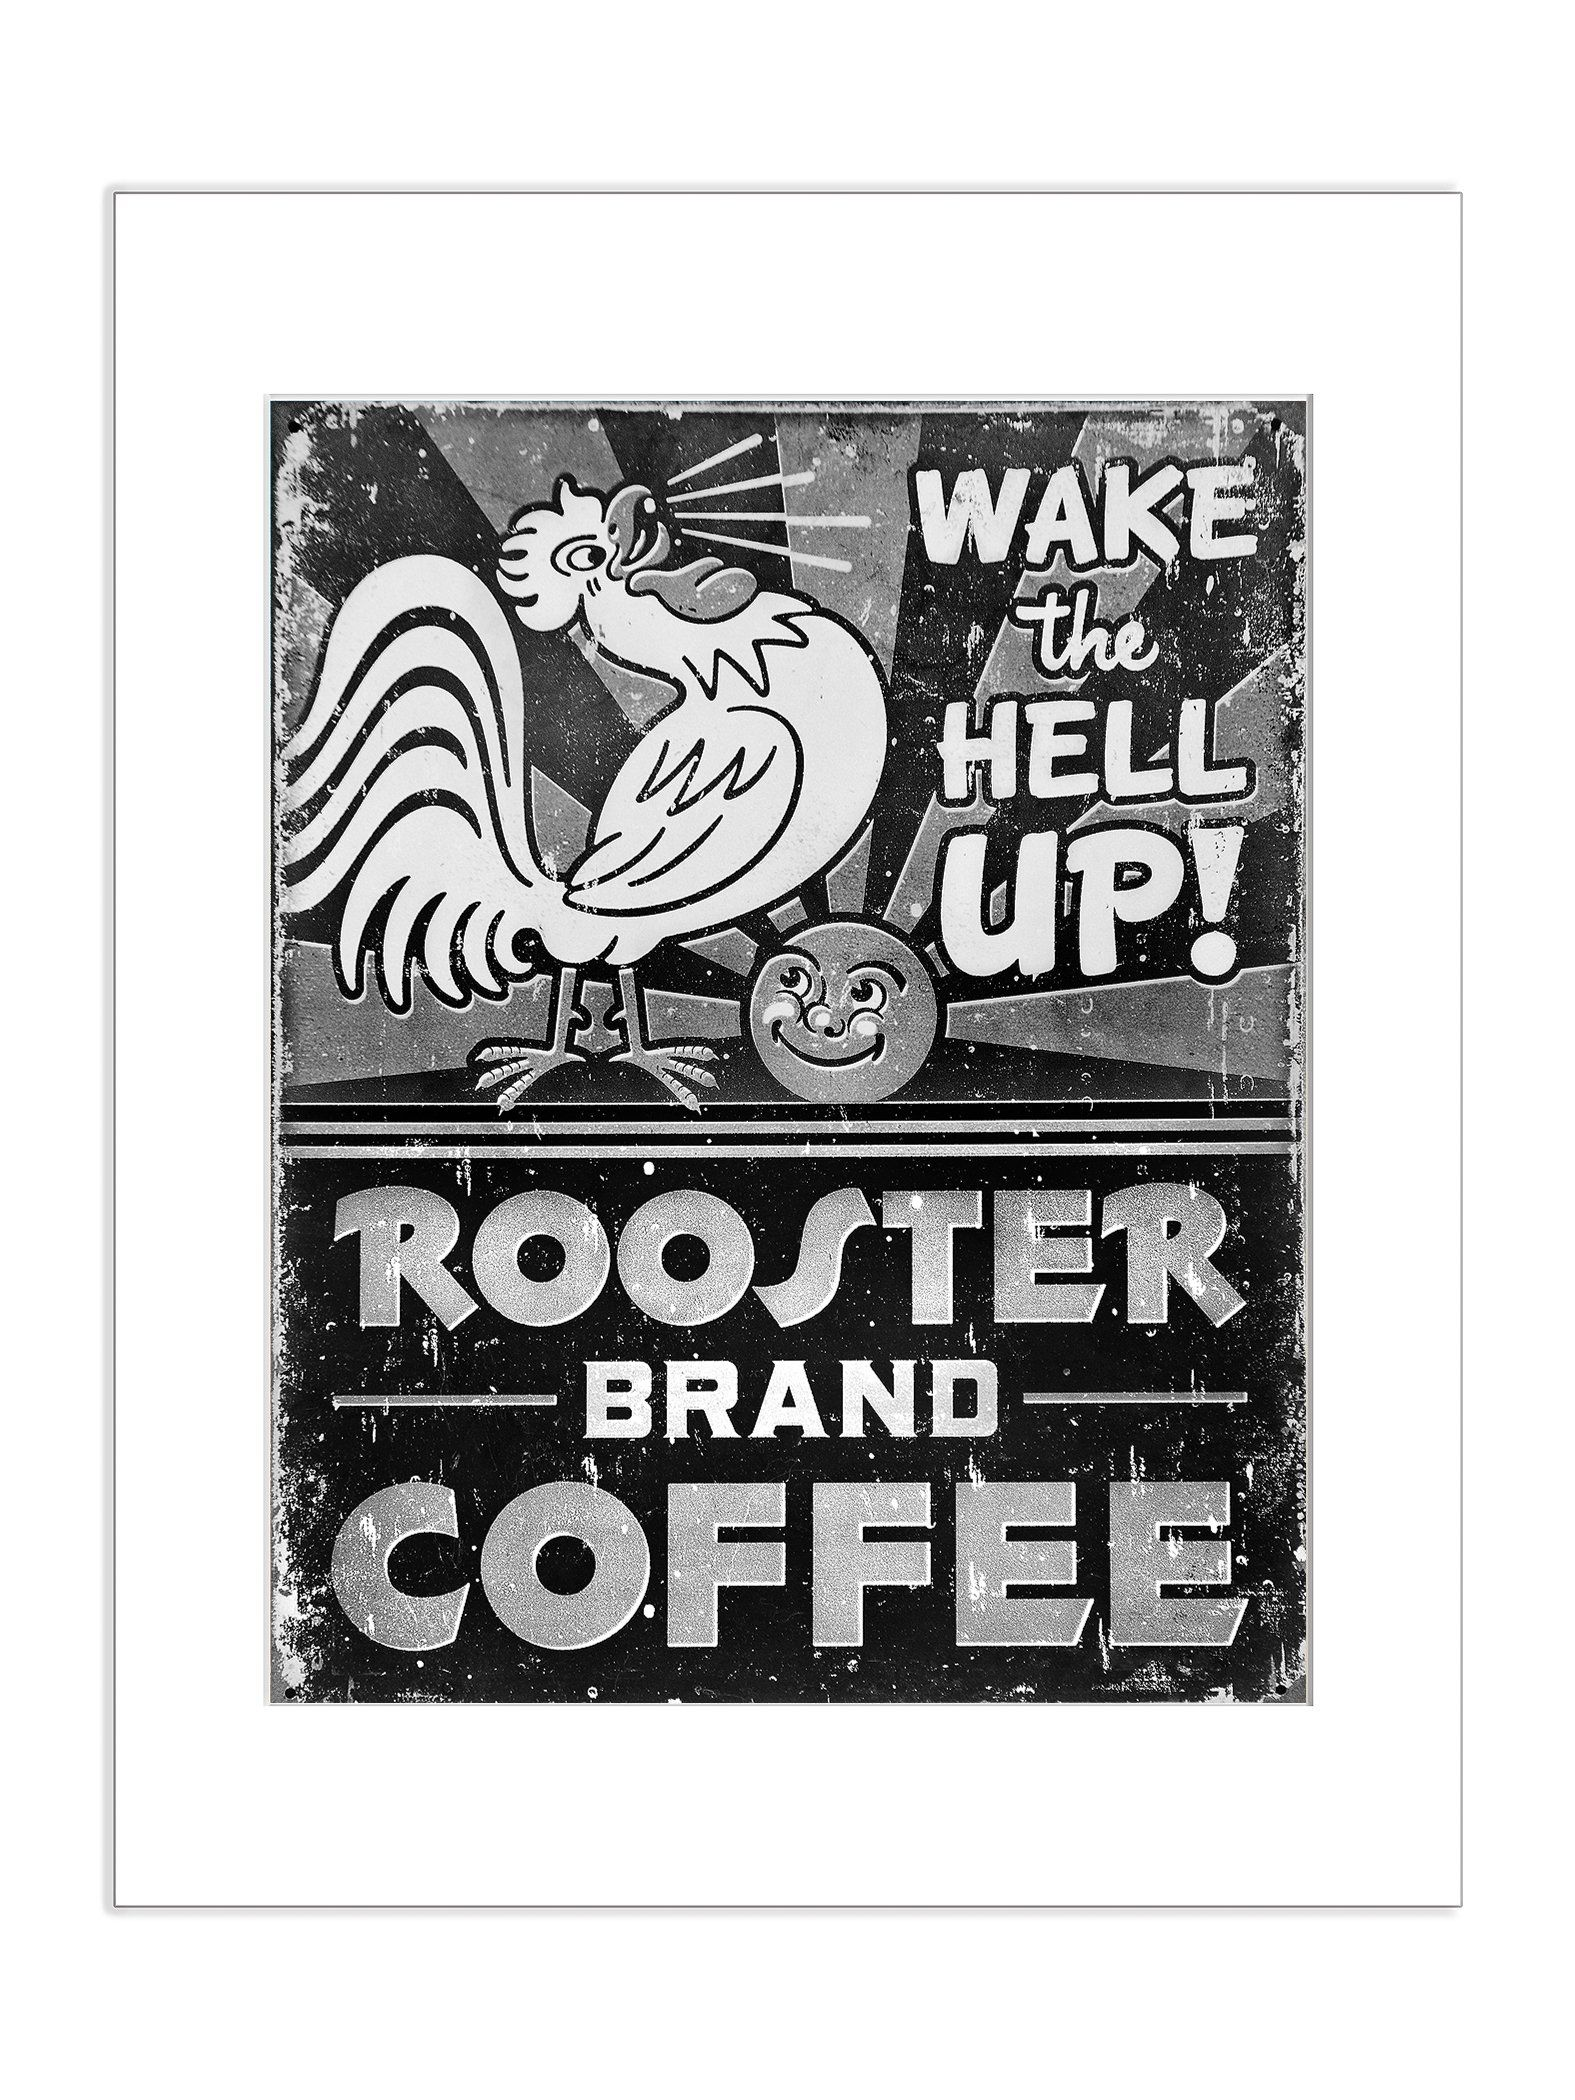 Rooster coffee wake the hell up size crop recommendations available in sizes